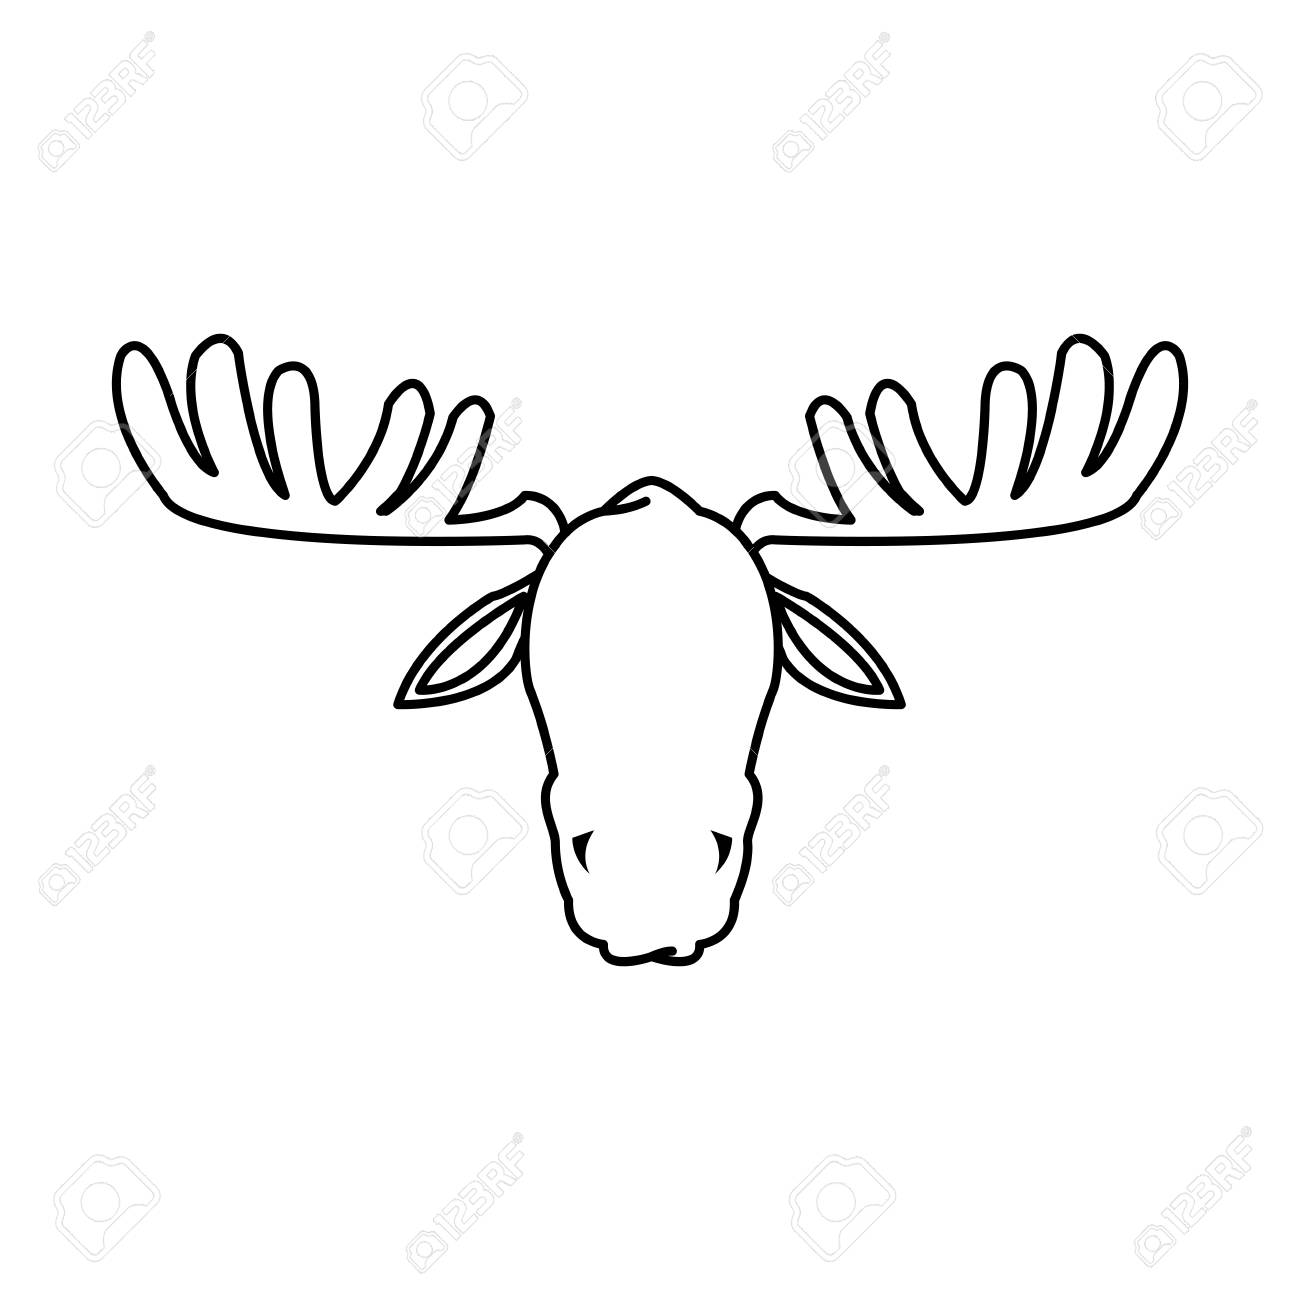 Moose Antler Animal Natural Wildlife Image Vector Illustration